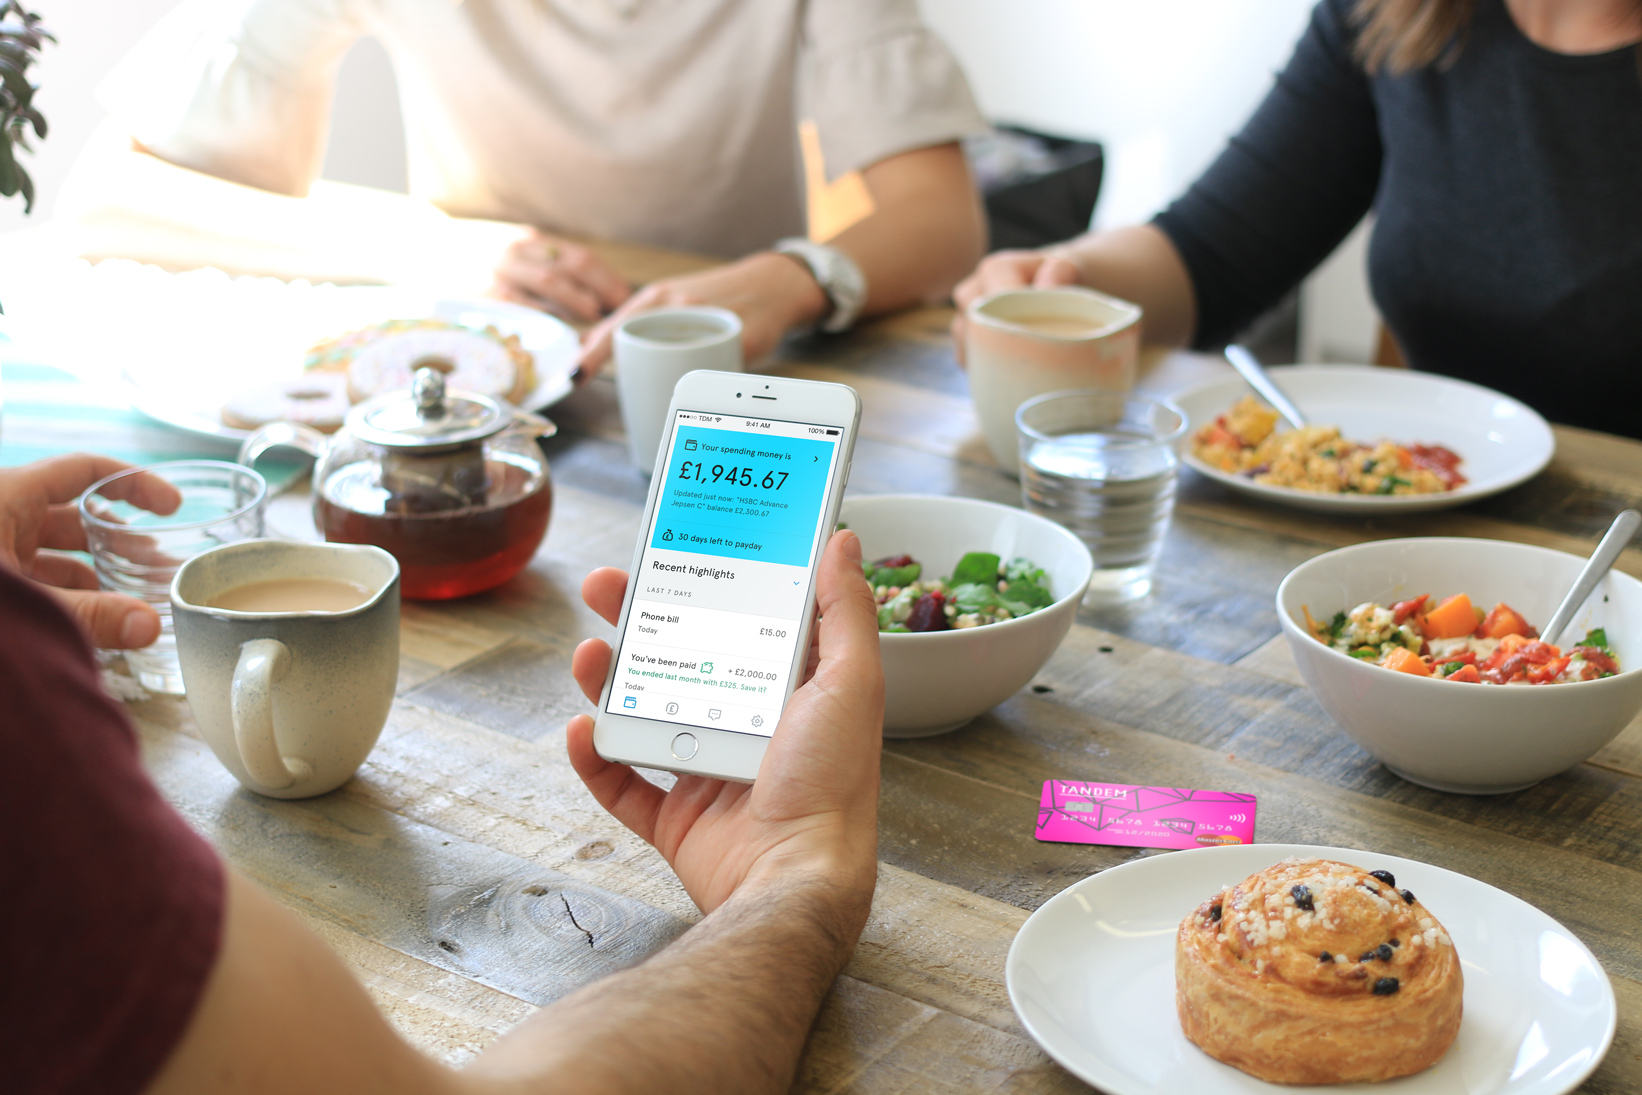 tandem app and card being used at lunch